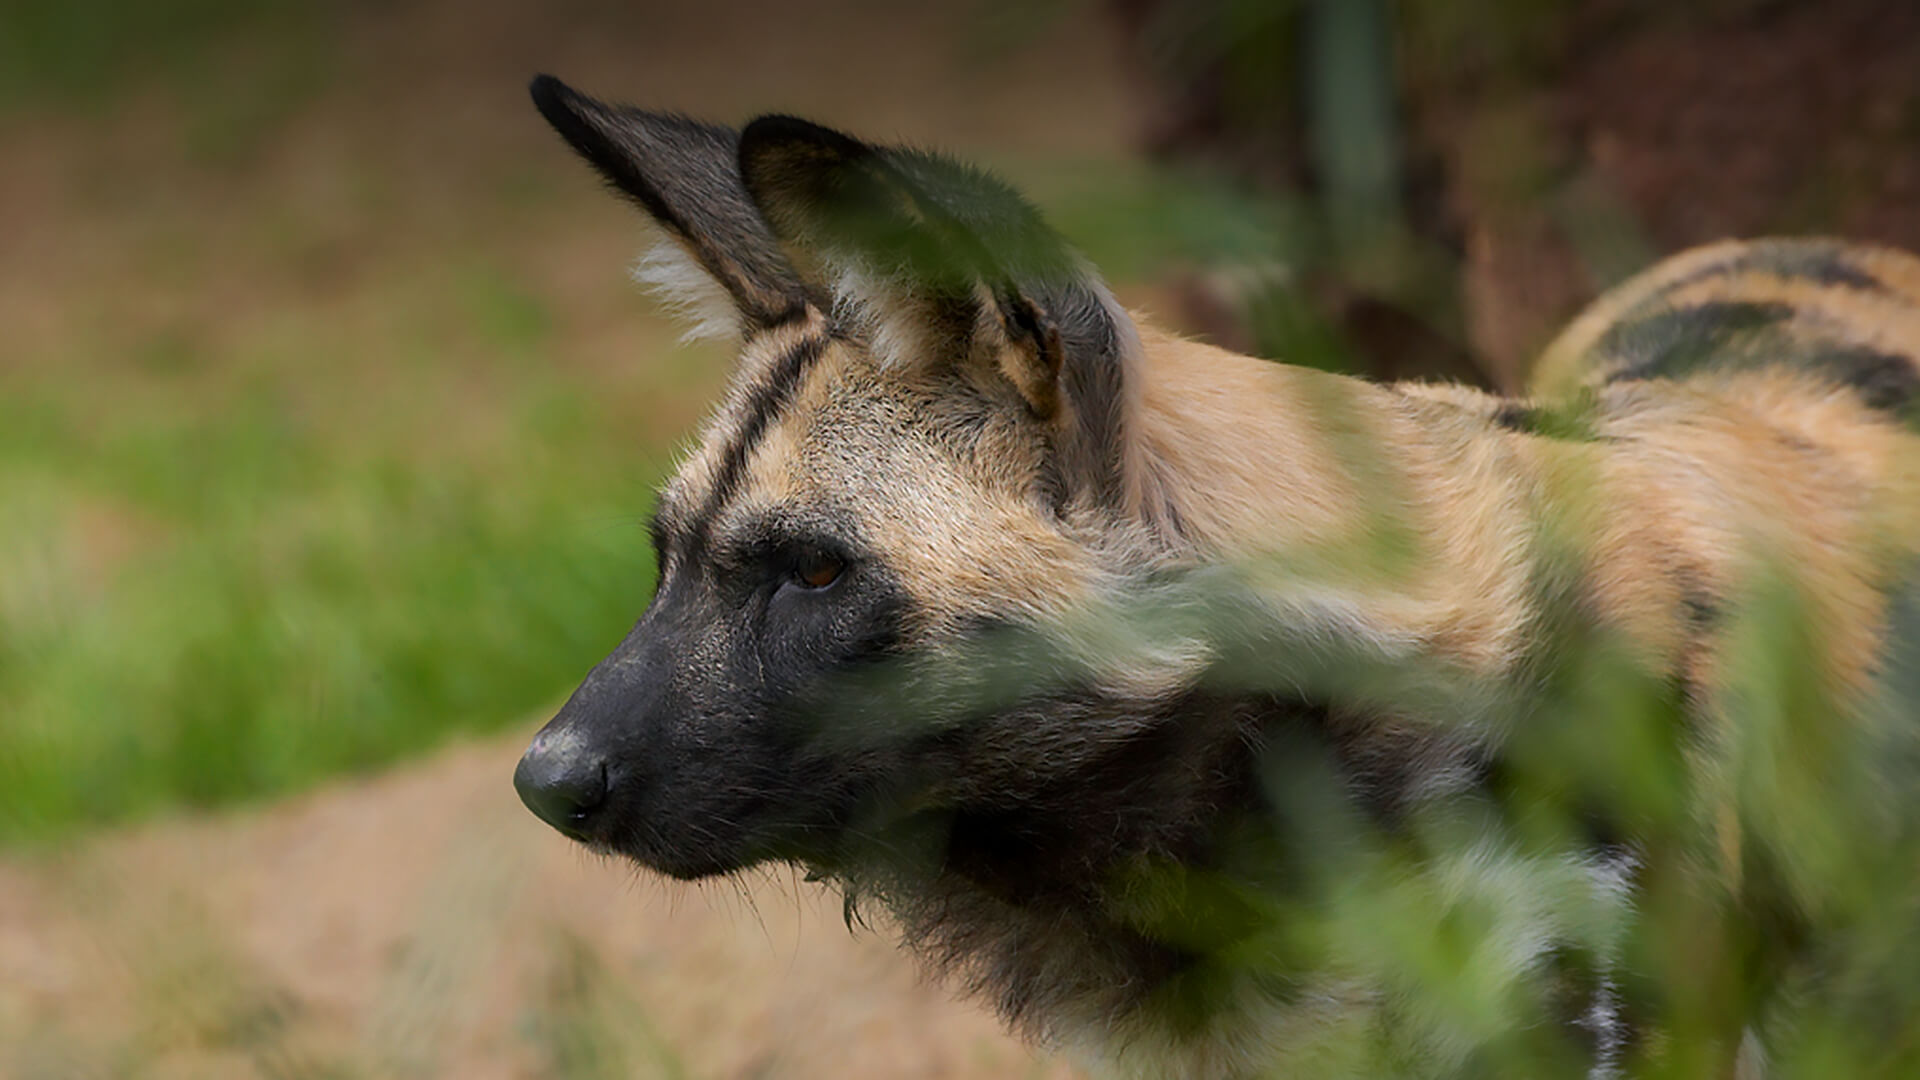 A painted dog looks to the left as it stands behind some blurred grass